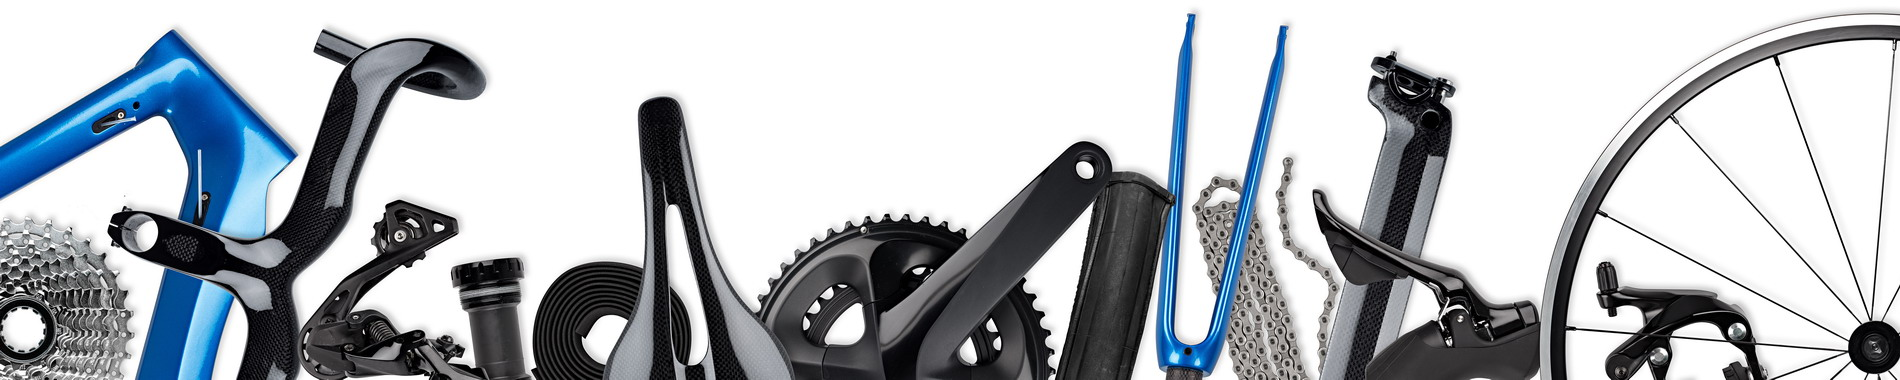 We Now Support the Bike Industry with More Carbon Fiber Tubes